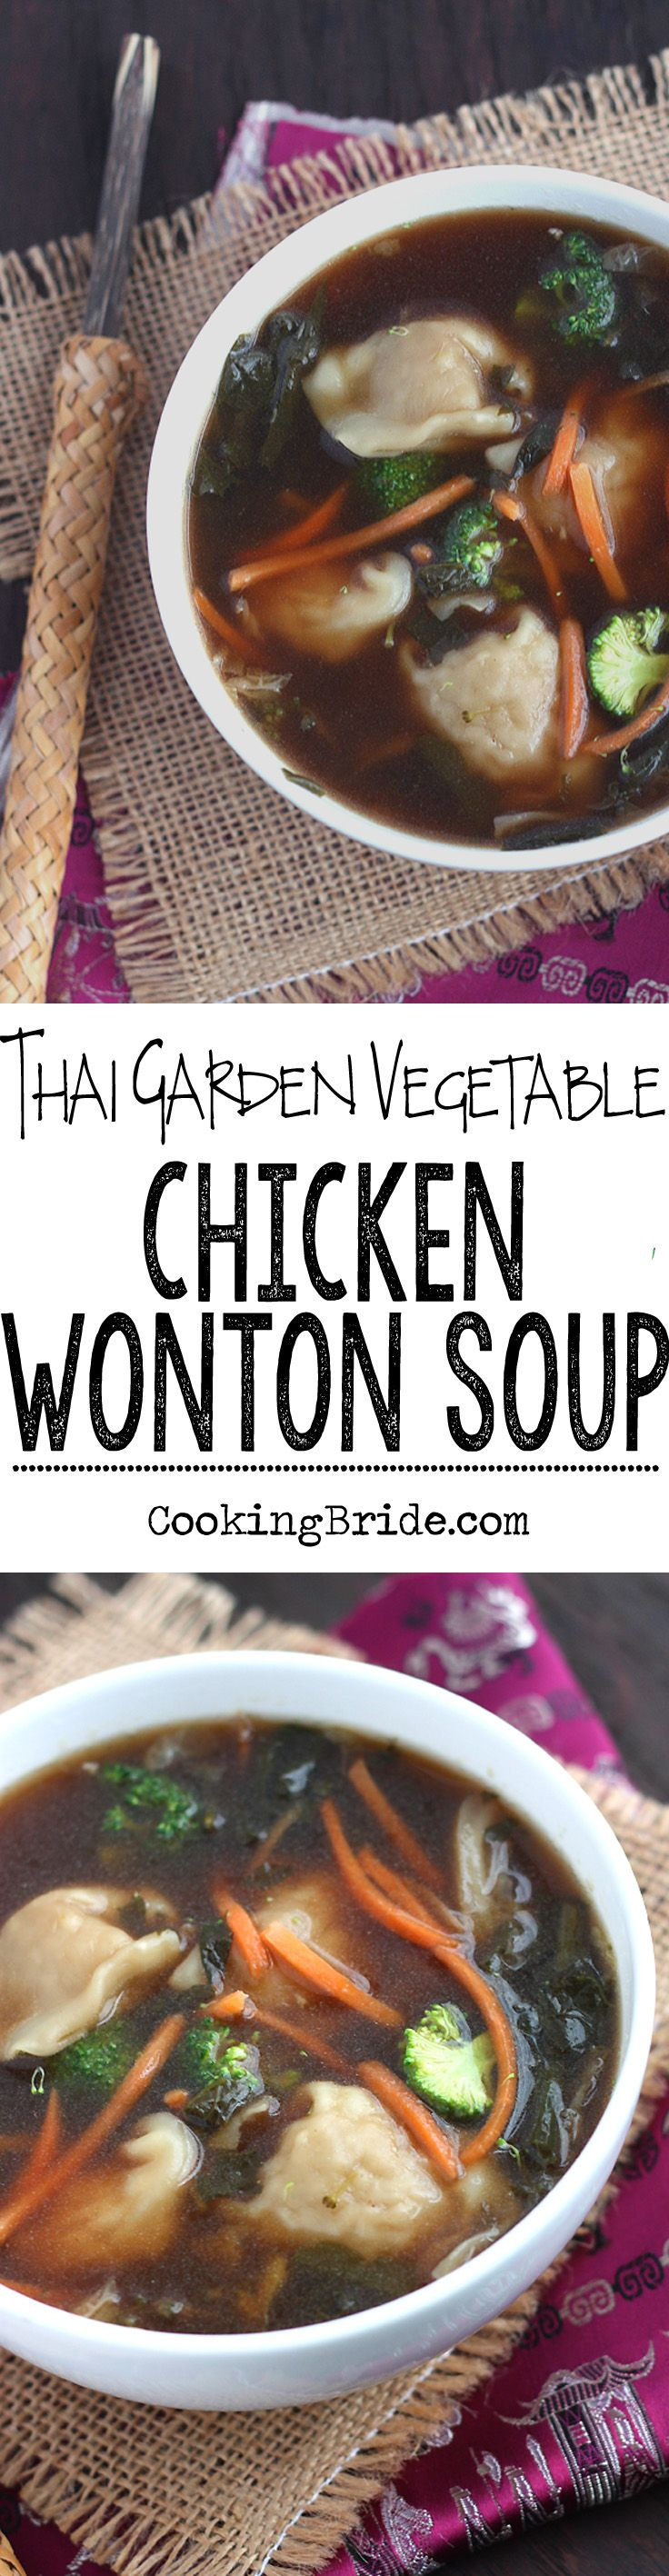 Tender veggies and spicy tangy thai chili vinegar make give this garden vegetable chicken wonton soup a kick.